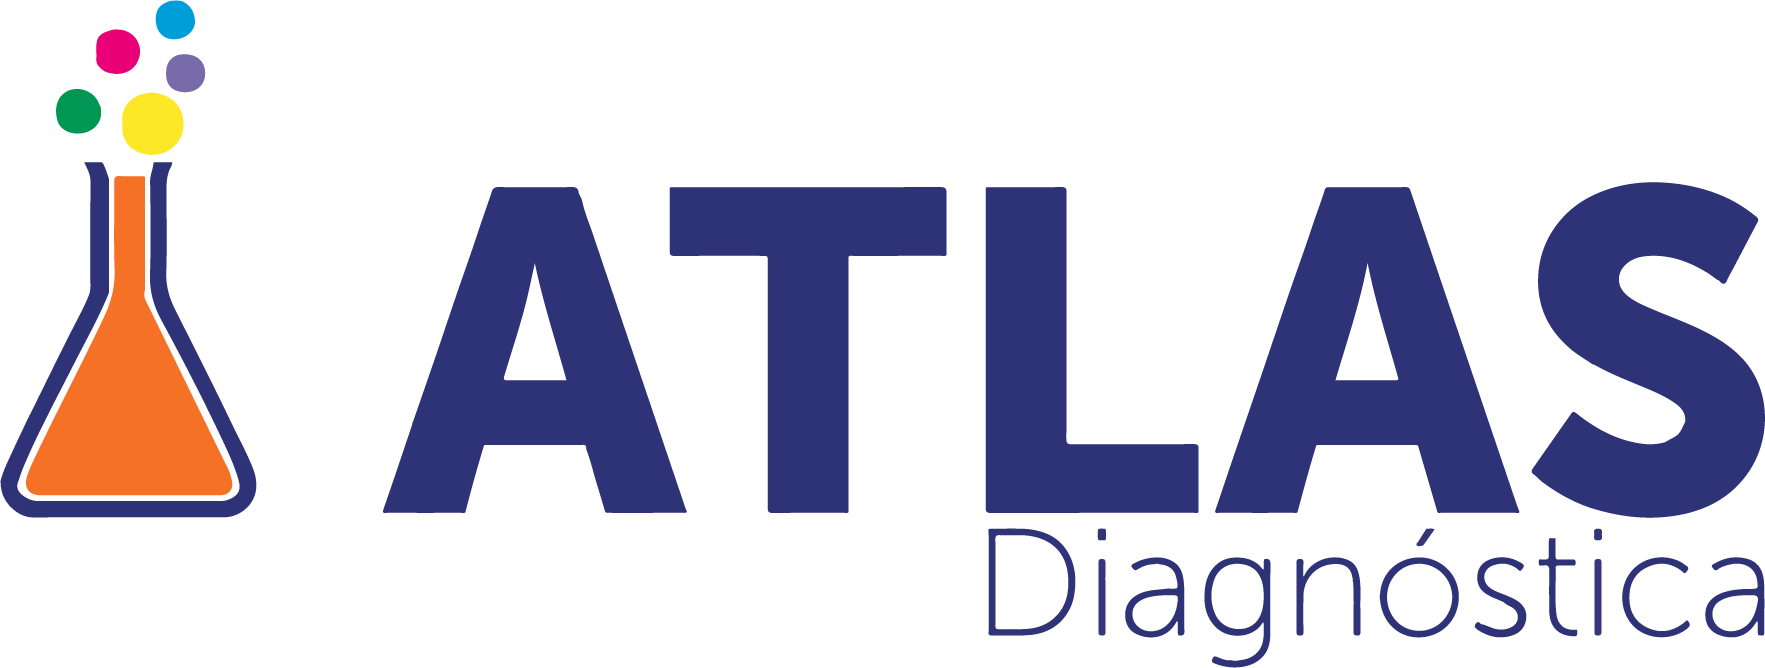 Atlas Diagnóstica